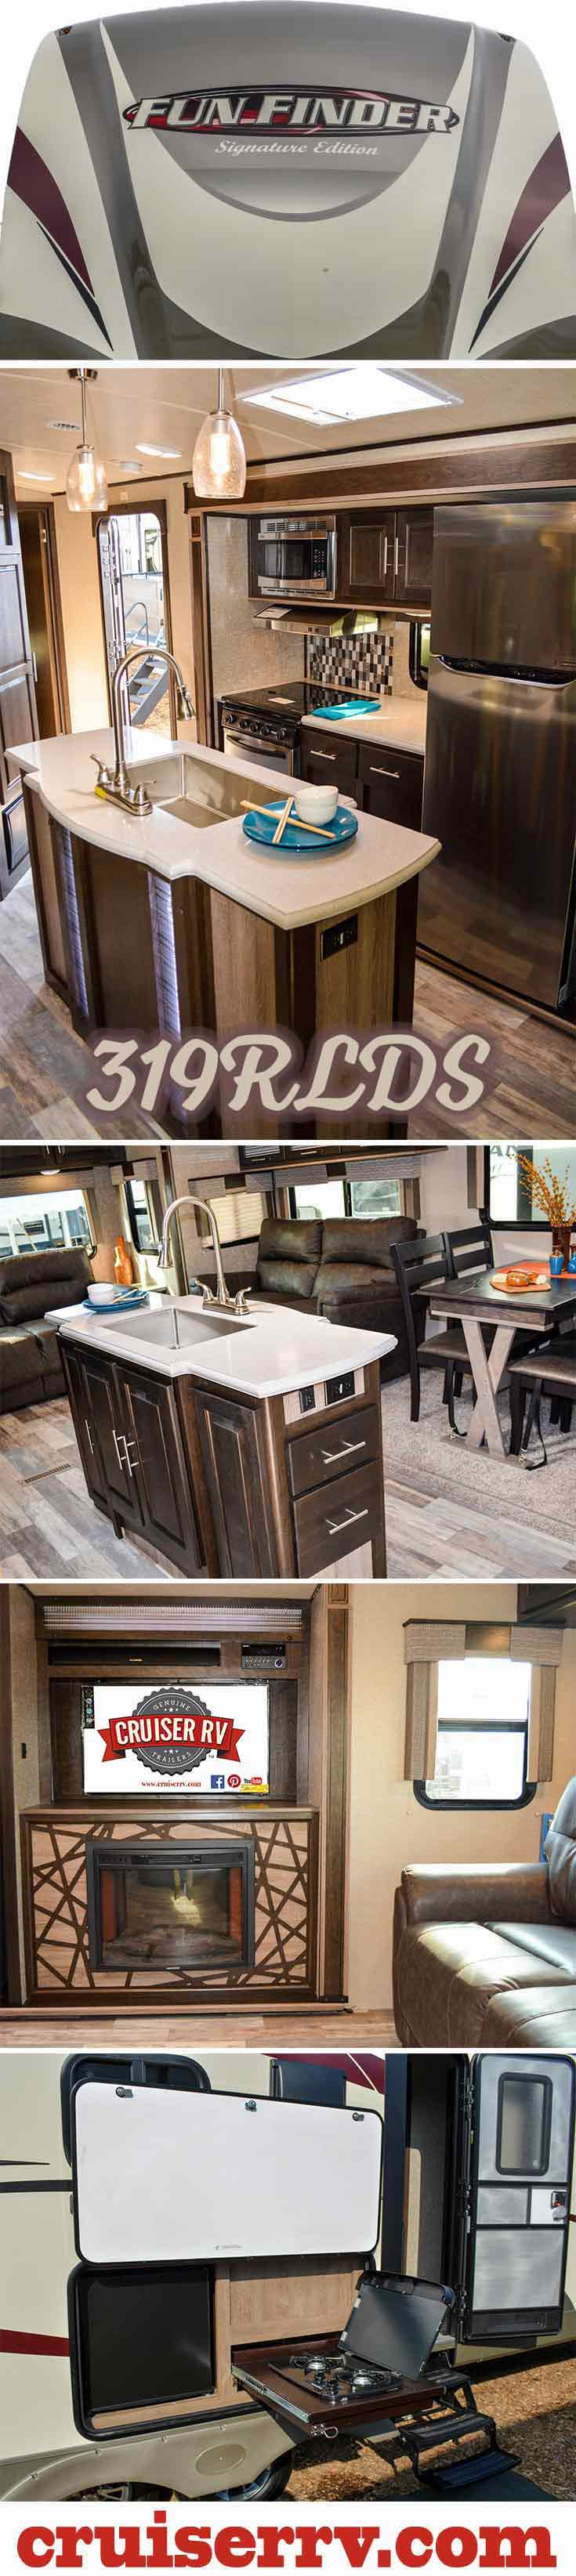 2017 Fun Finder Signature 319RLDS | Cruiser RV